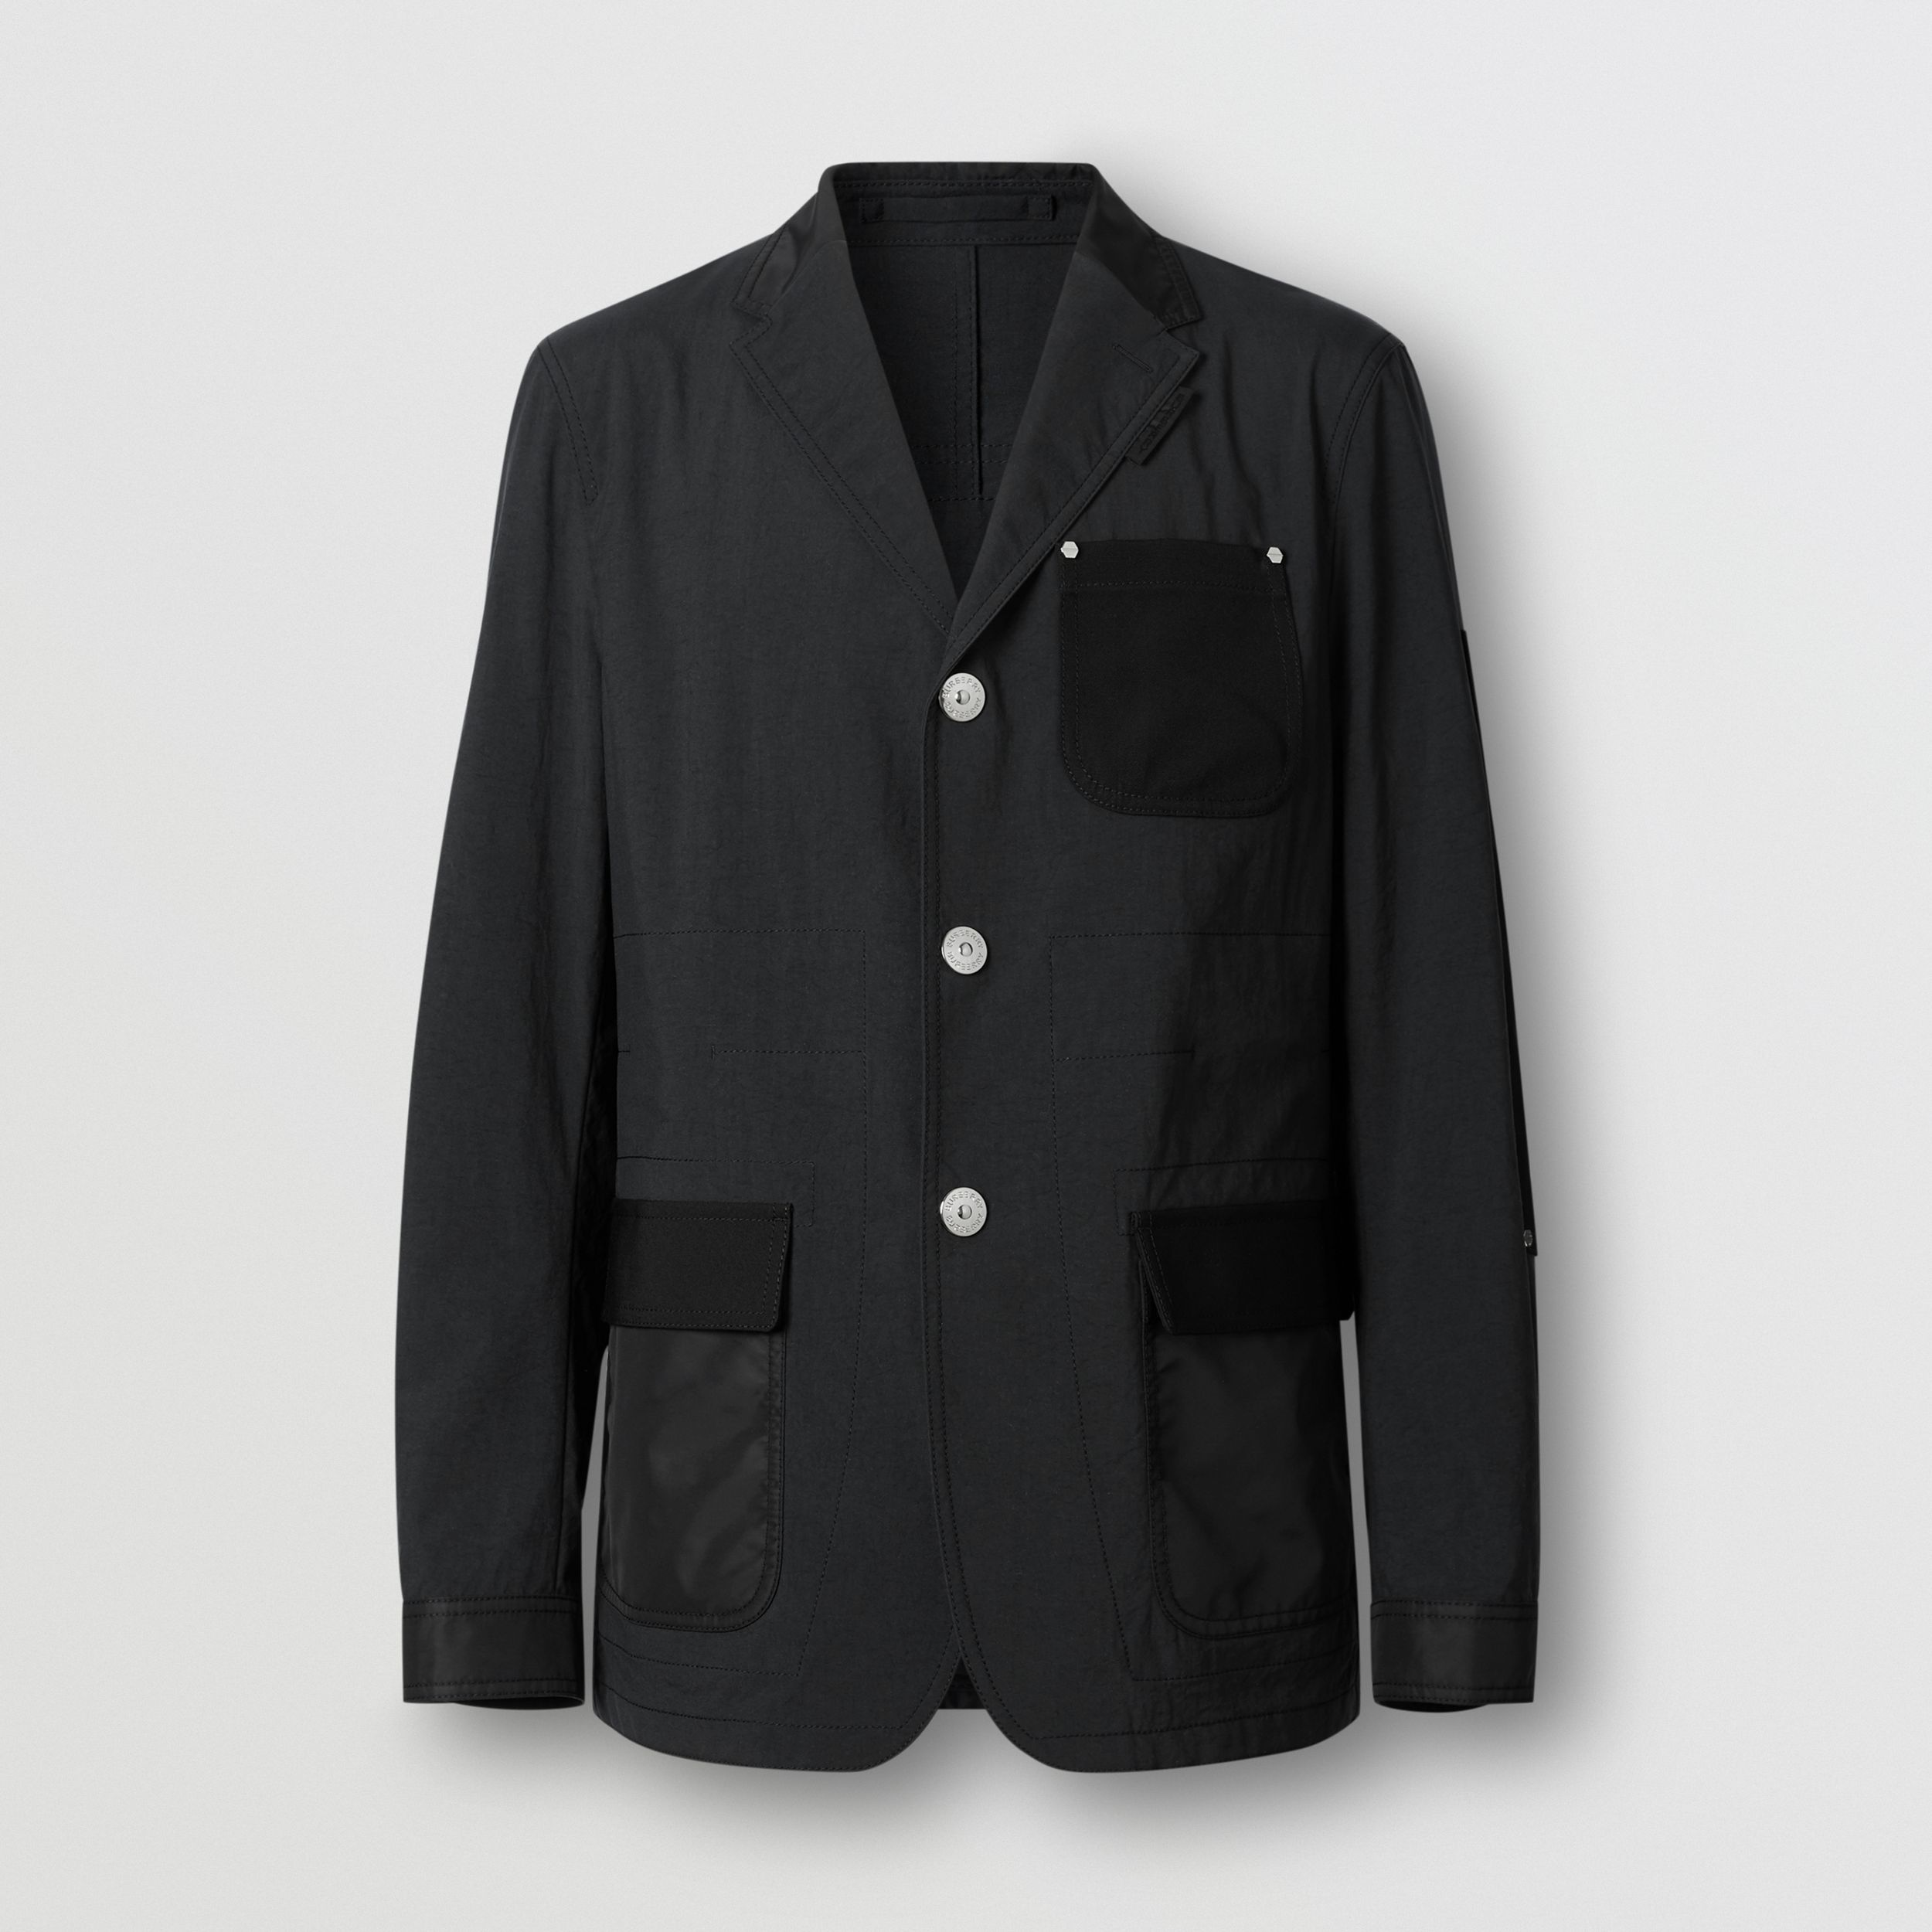 Slim Fit Panelled Nylon and Wool Tailored Jacket in Black - Men | Burberry - 4